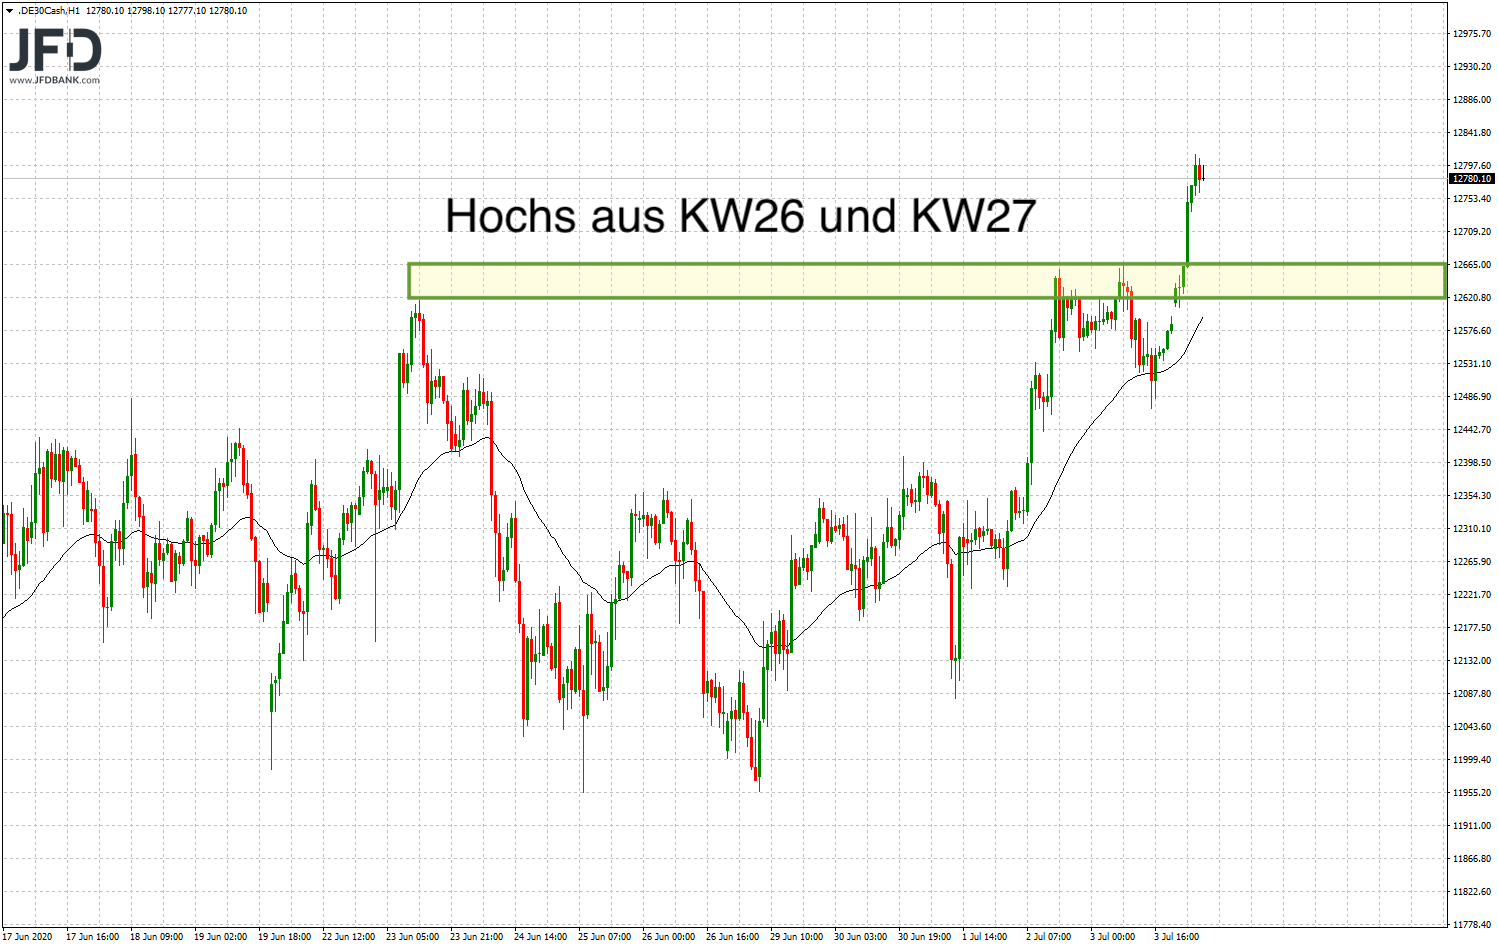 20200706_dax_vorboerse_stundenchart.png